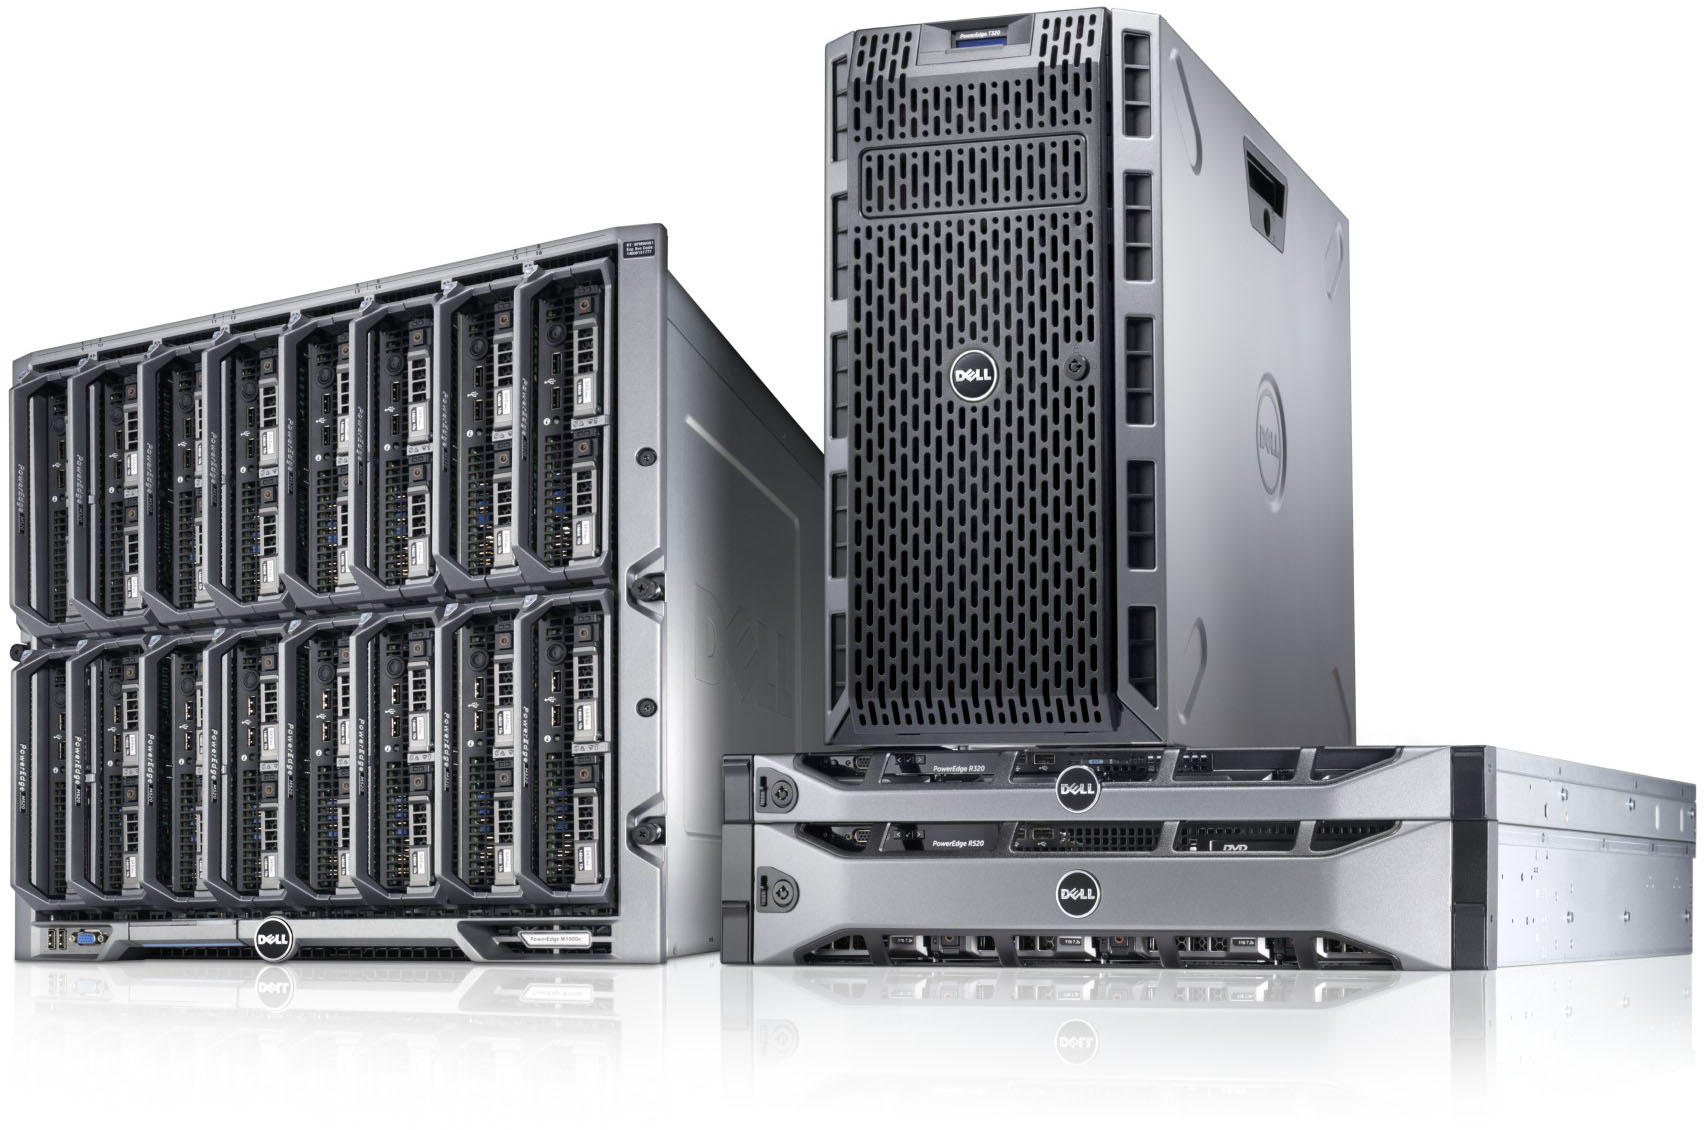 DELL PowerEdge Server Family